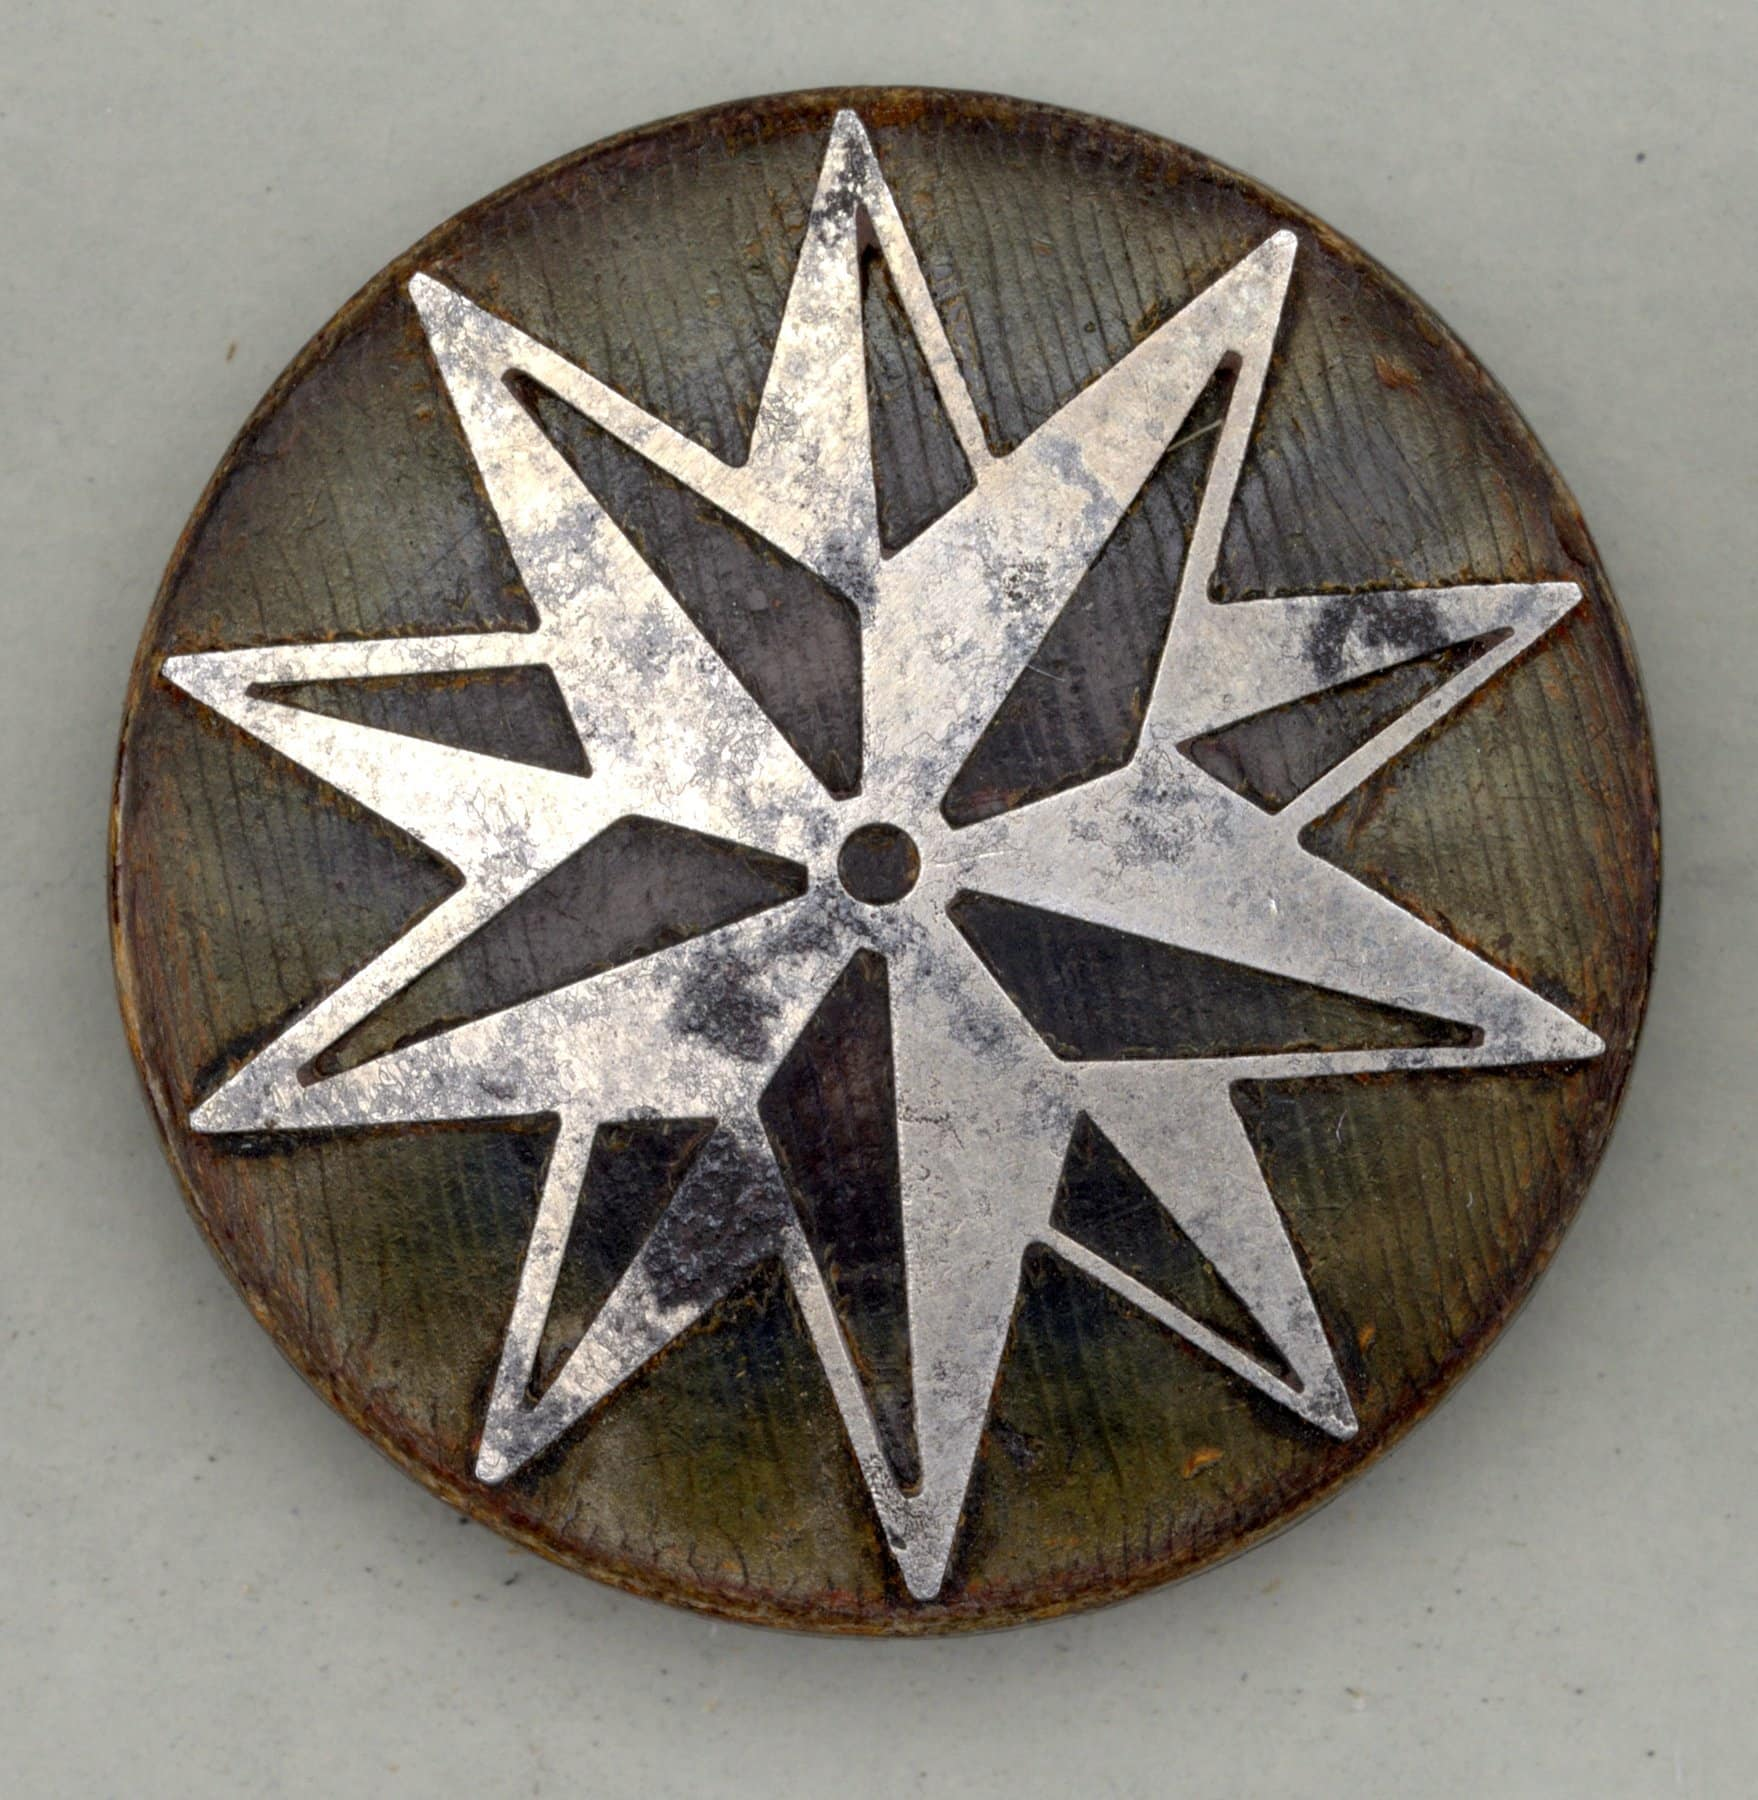 Antique 19th century flat circular wood buttons with two superimposed steel stars